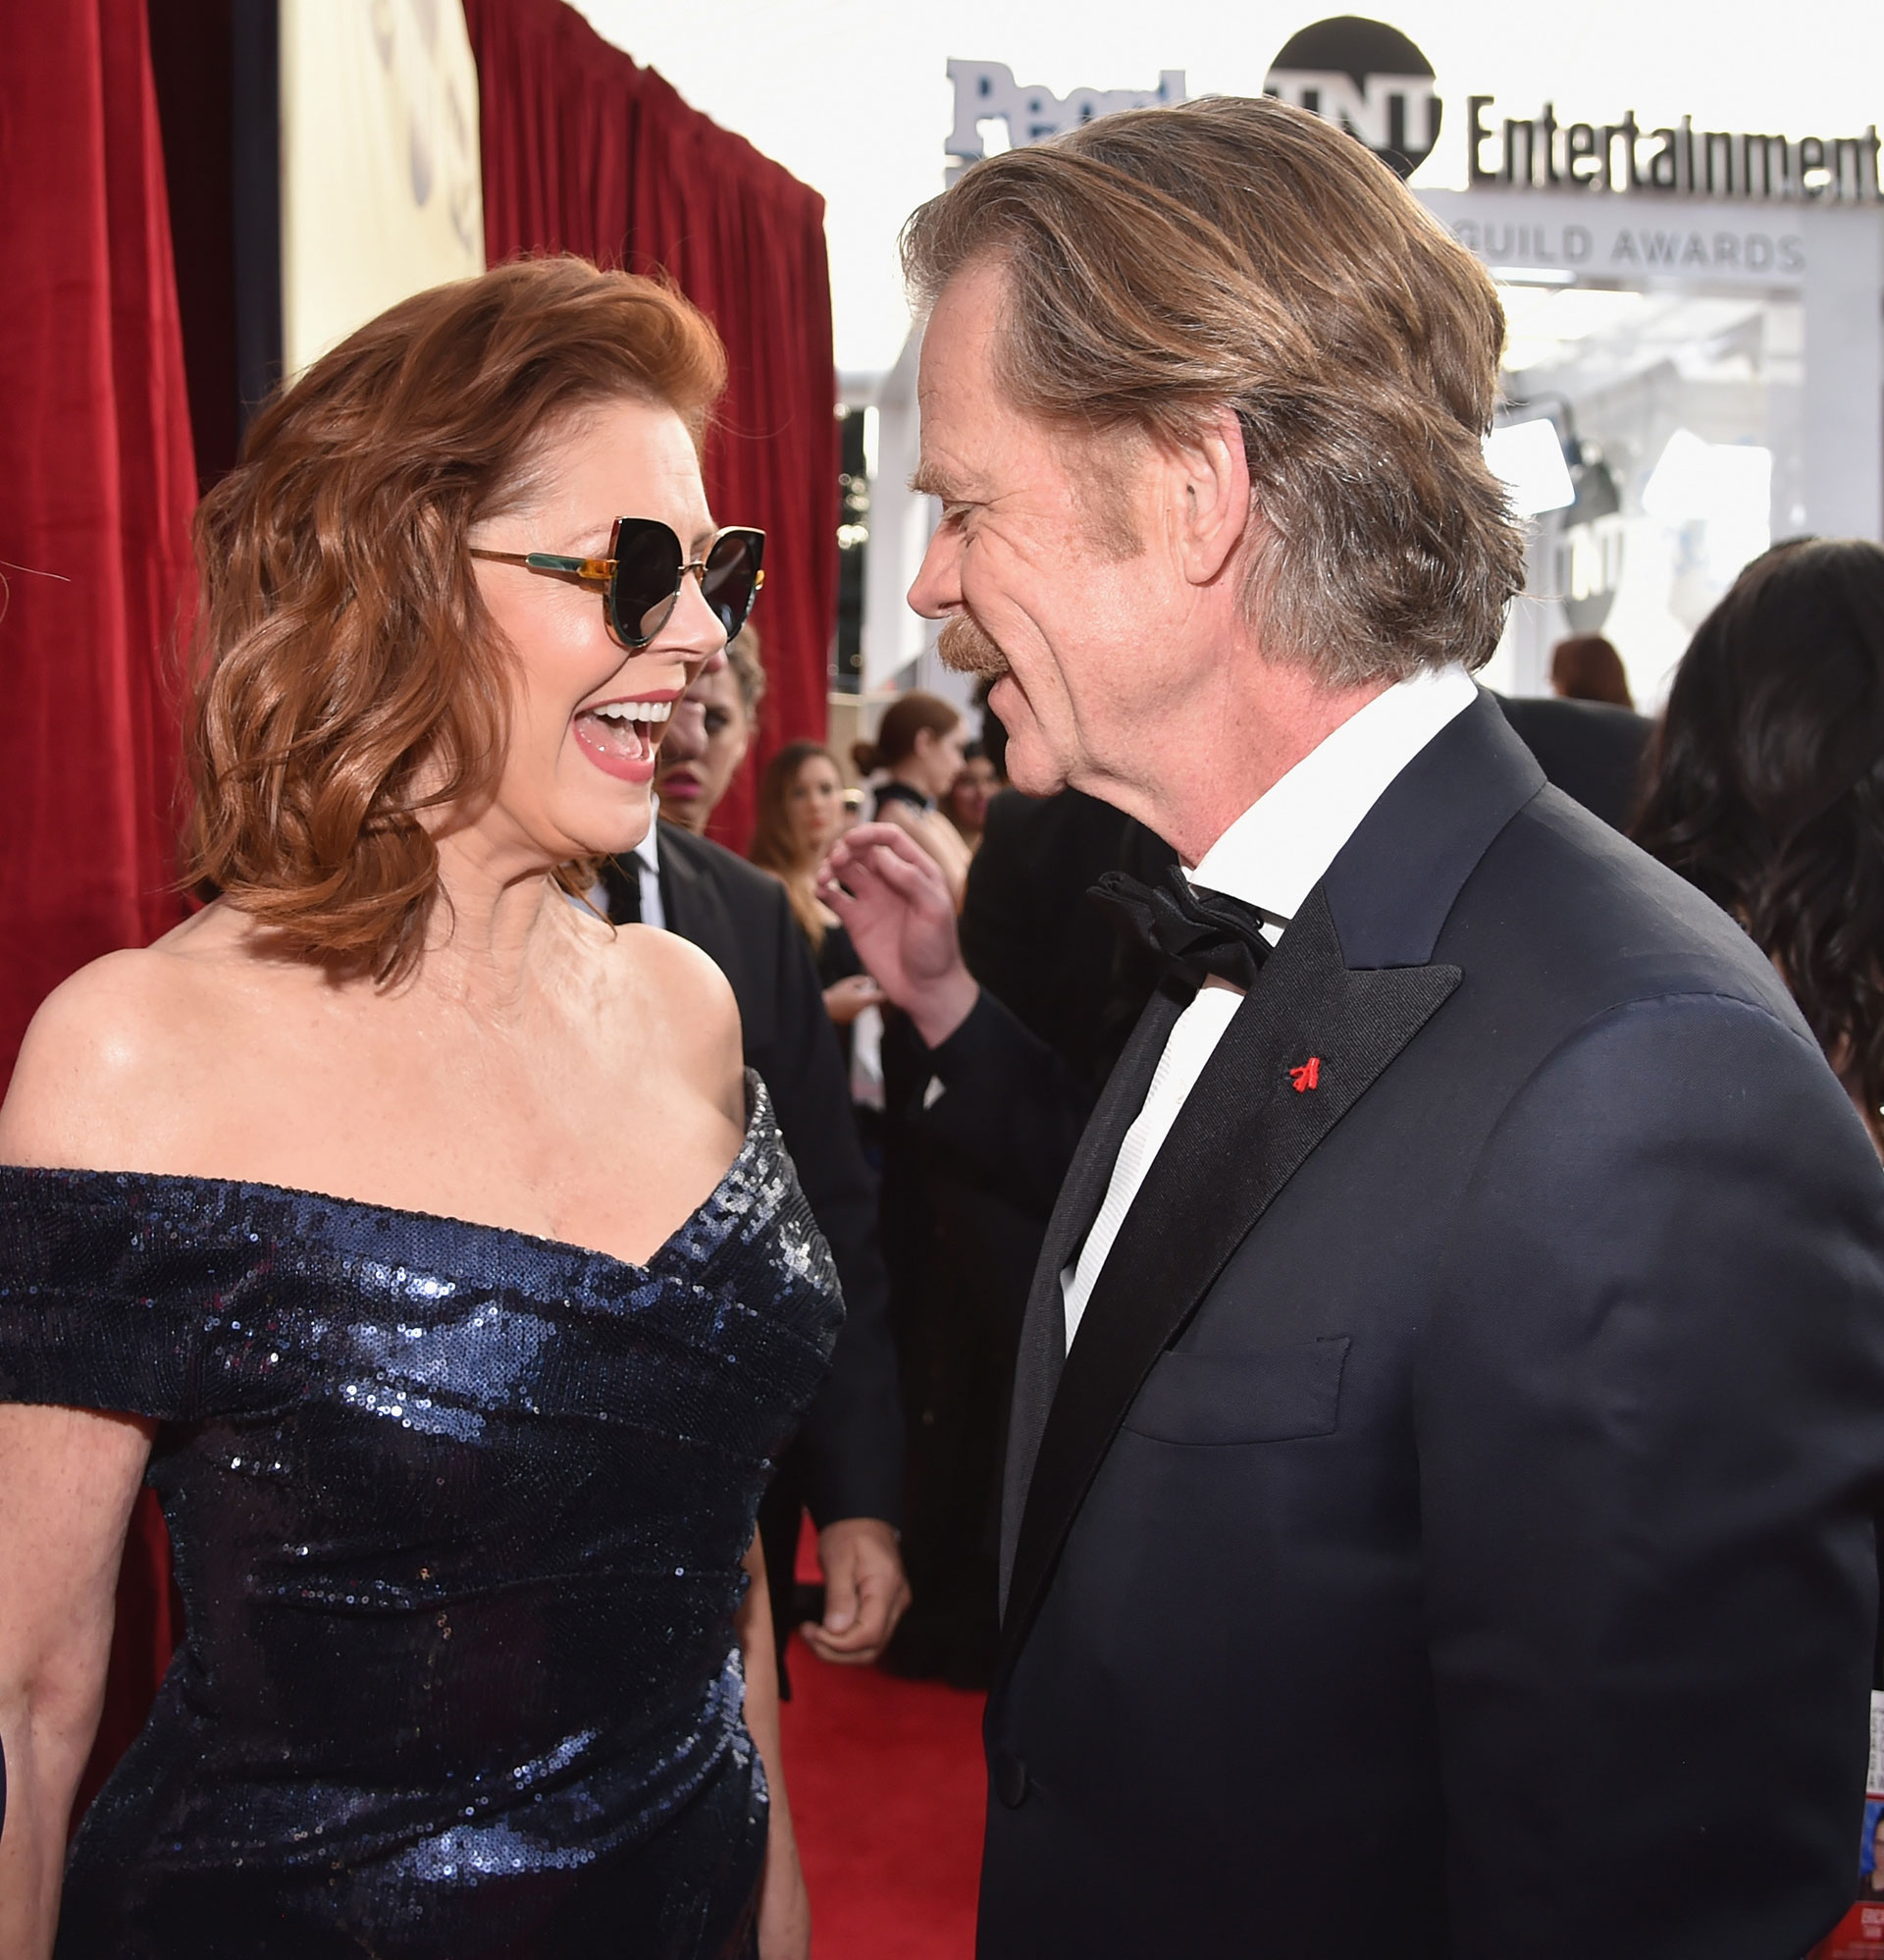 Dos viejos amigos que se saludan: Susan Sarandon (L) y William H. Macy. Foto by Kevin Mazur/Getty Images for Turner Image